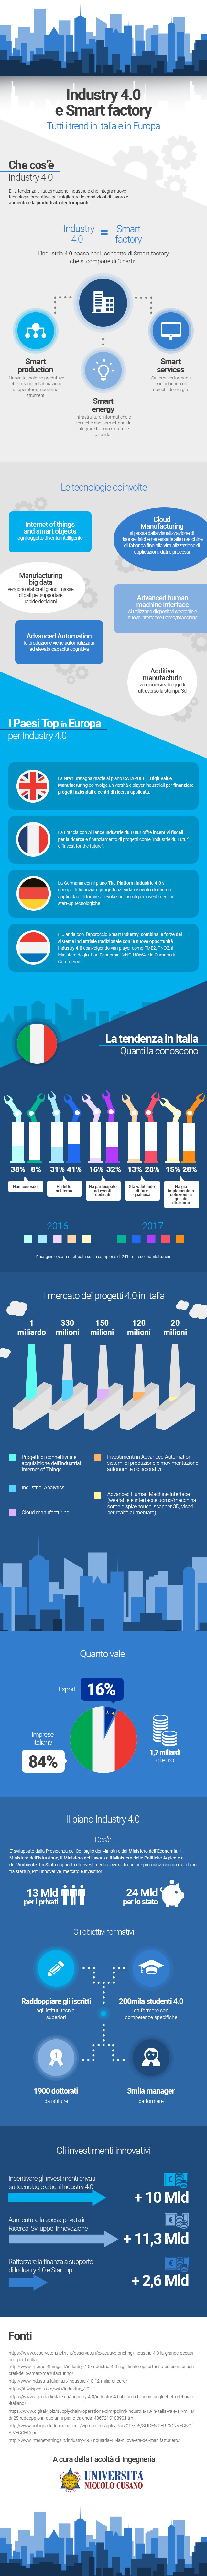 https://www.unicusano.it/blog/images/infografiche/industry-40-infografica.jpg